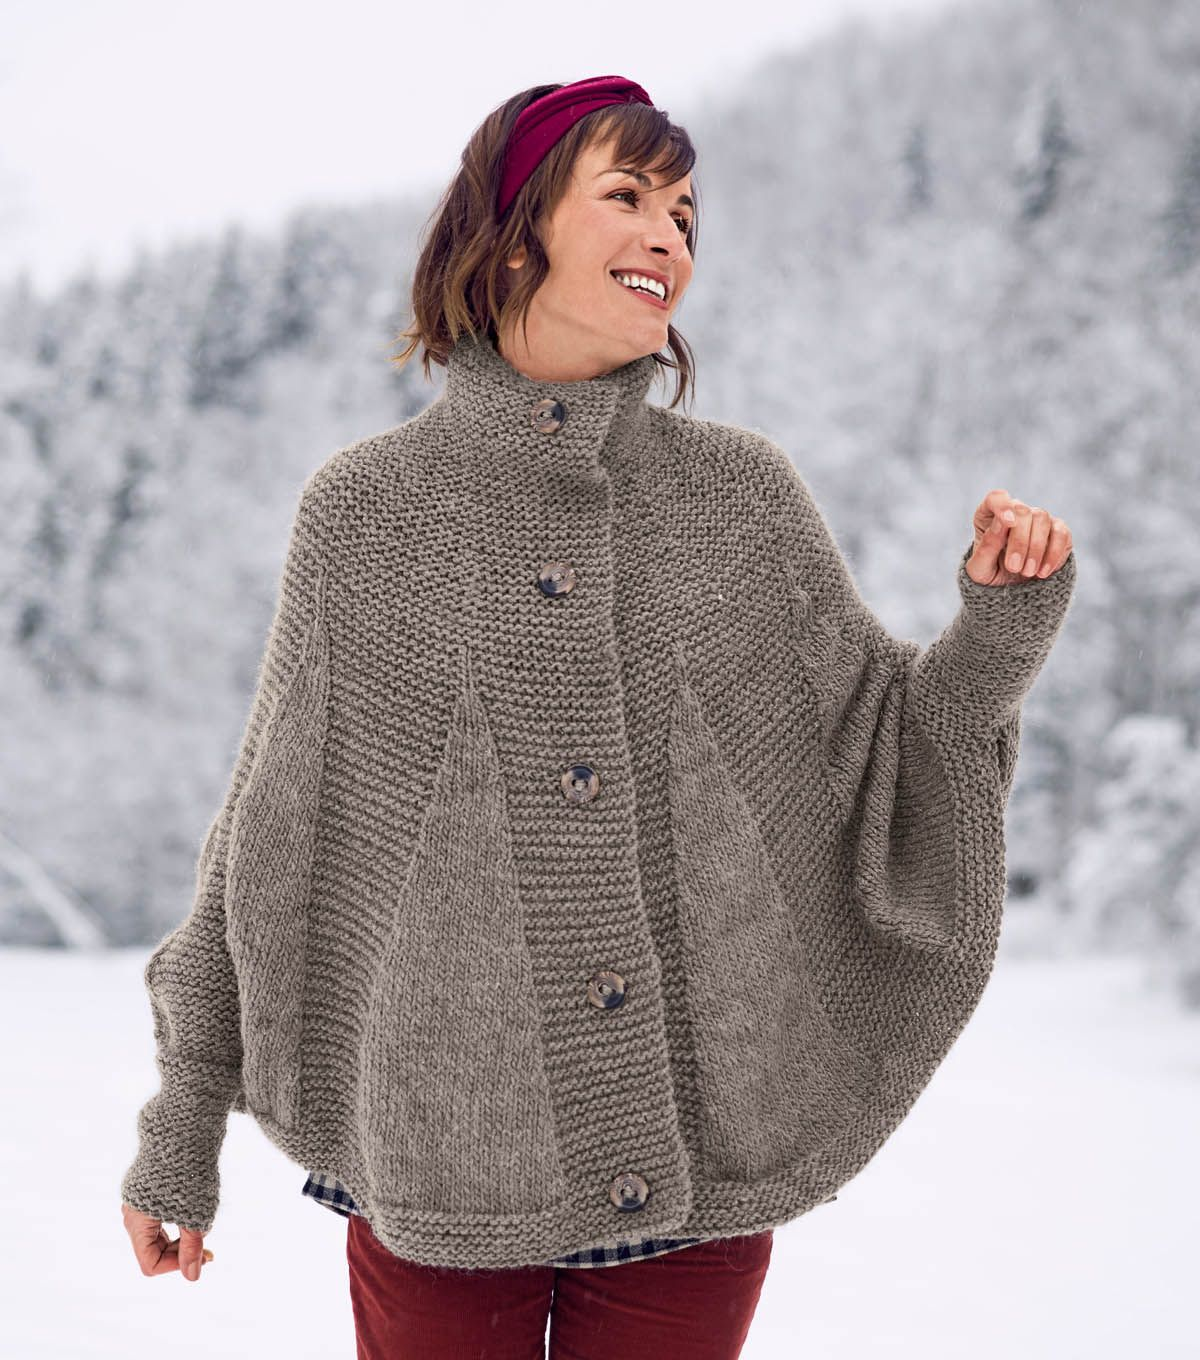 How To Knit a Poncho Cape, I\'d love to convert this into a crochet ...